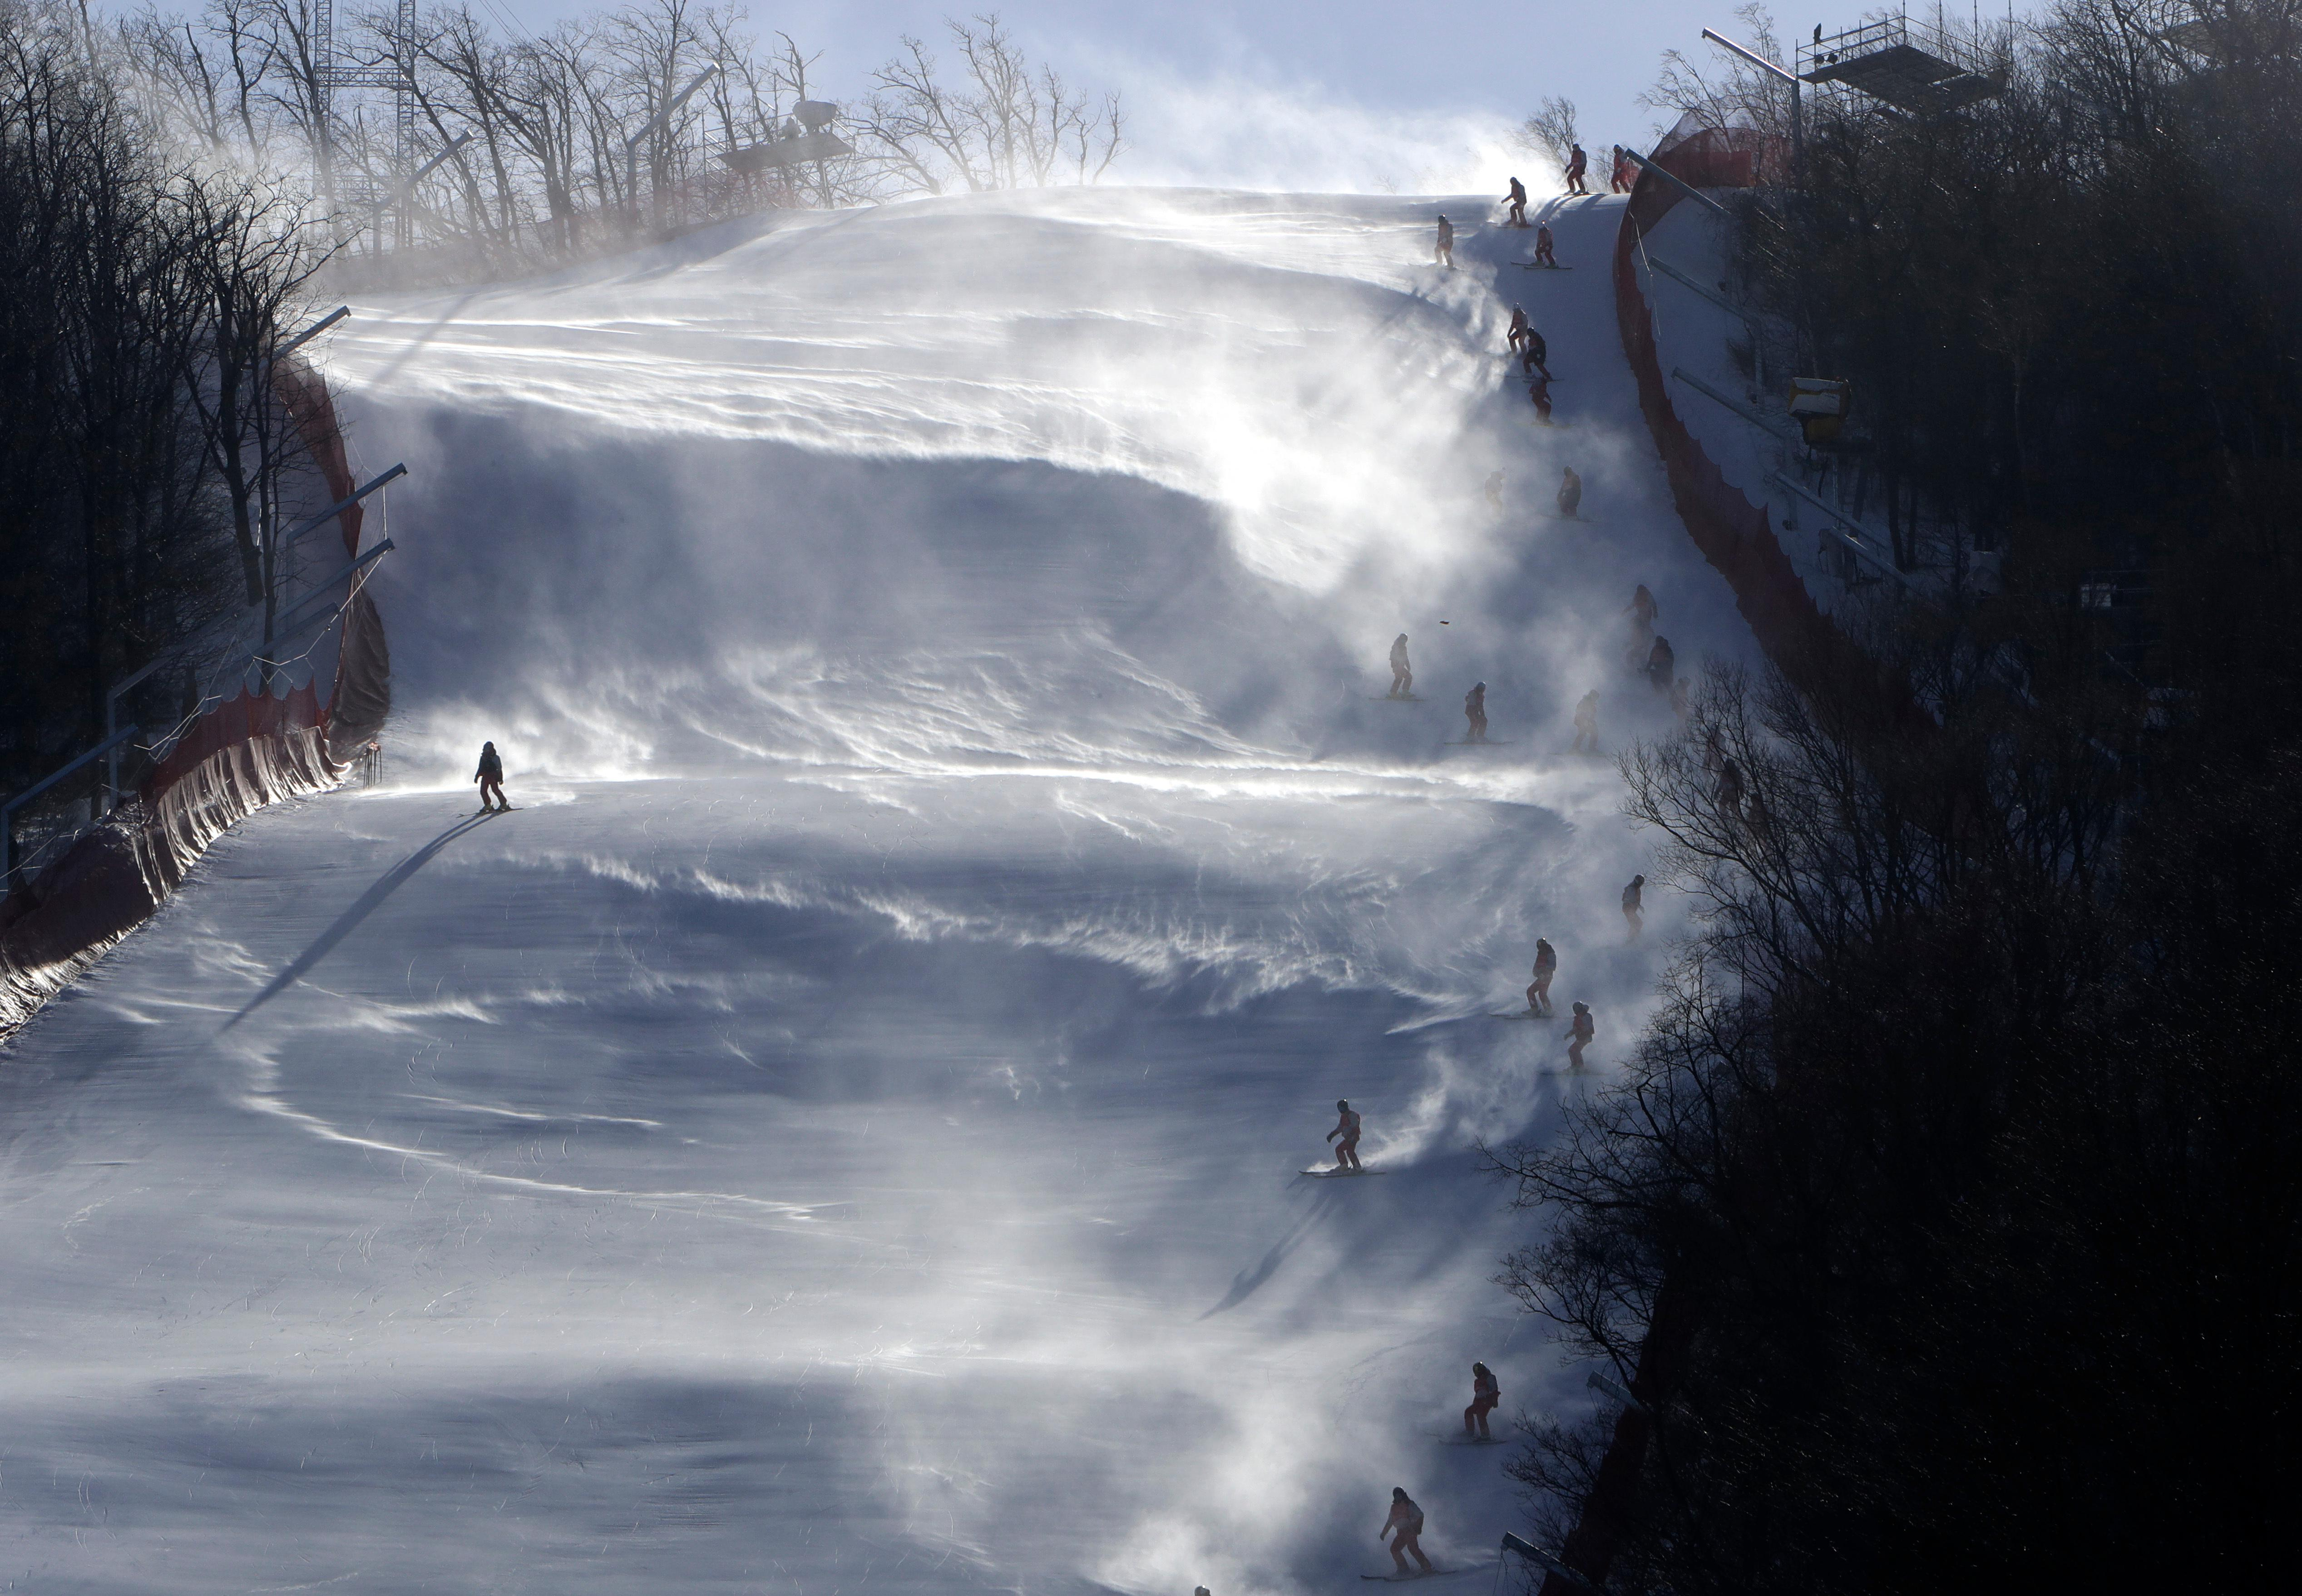 Course crew slide slip to the finish area after the women's giant slalom was postponed due to high winds at the 2018 Winter Olympics at the Yongpyong Alpine Center, Pyeongchang, South Korea, Monday, Feb. 12, 2018. (AP Photo/Michael Probst)